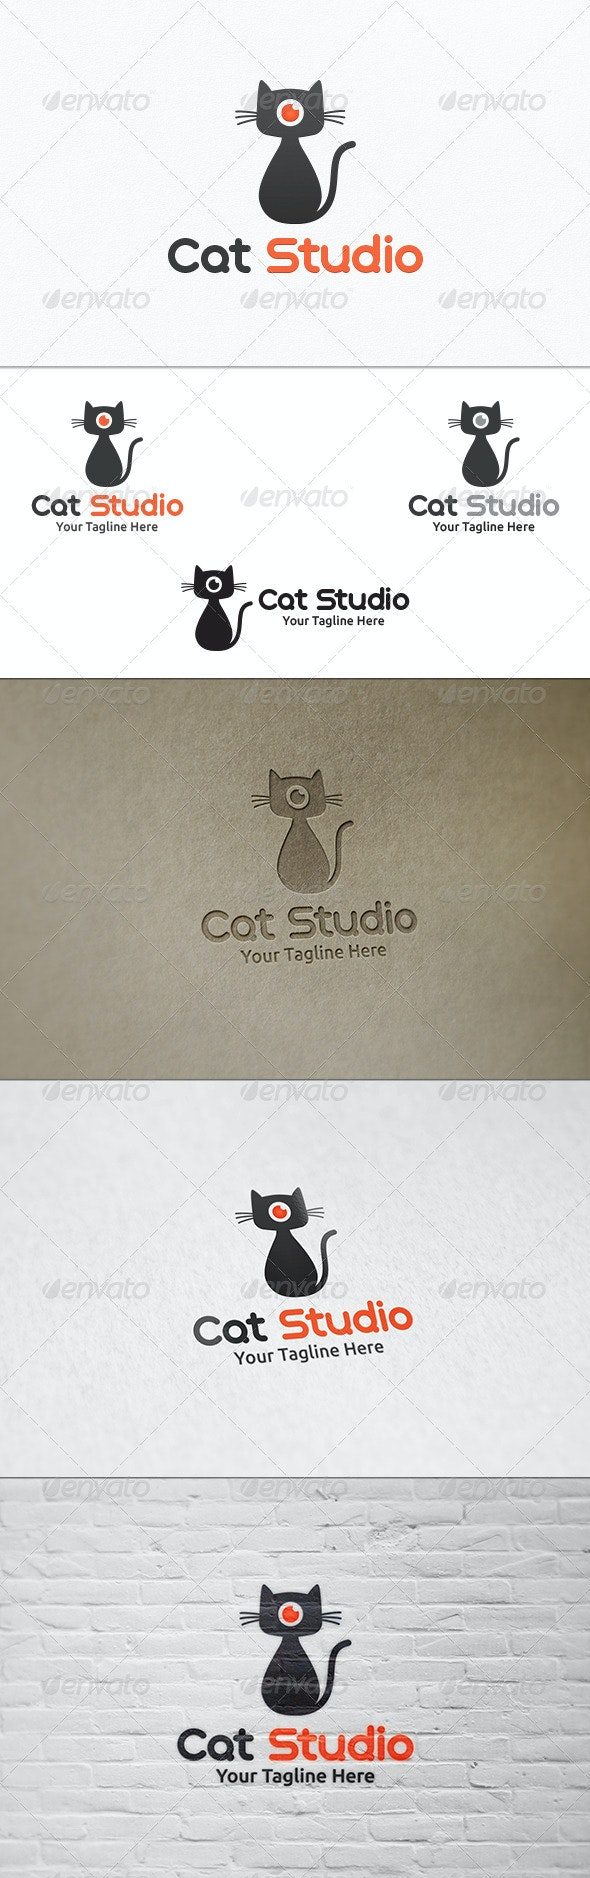 Cat Studio - Logo Template - Animals Logo Templates